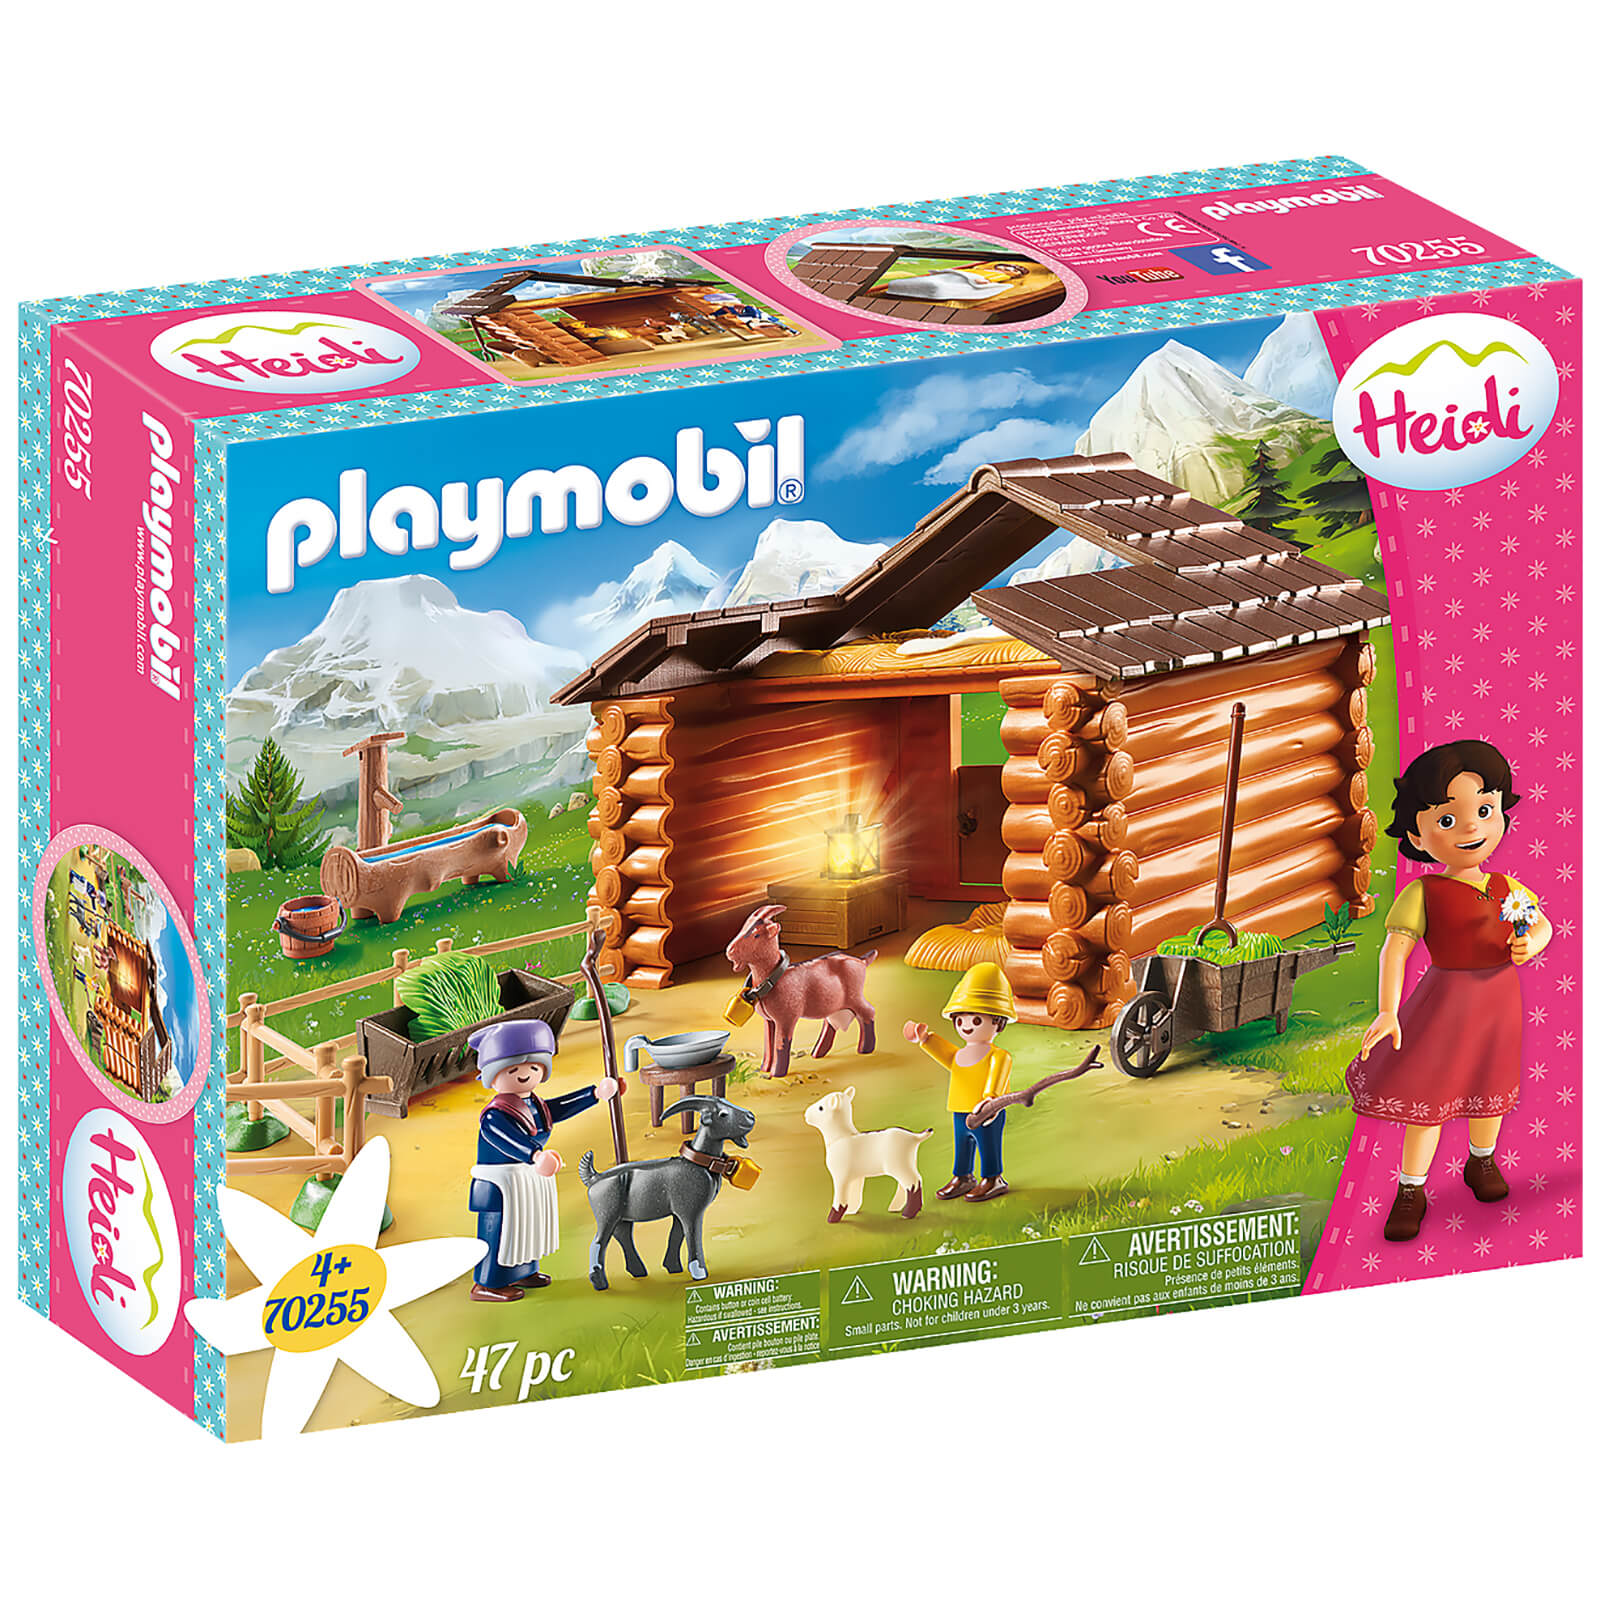 Image of Playmobil Peter's Goat Stable (70255)